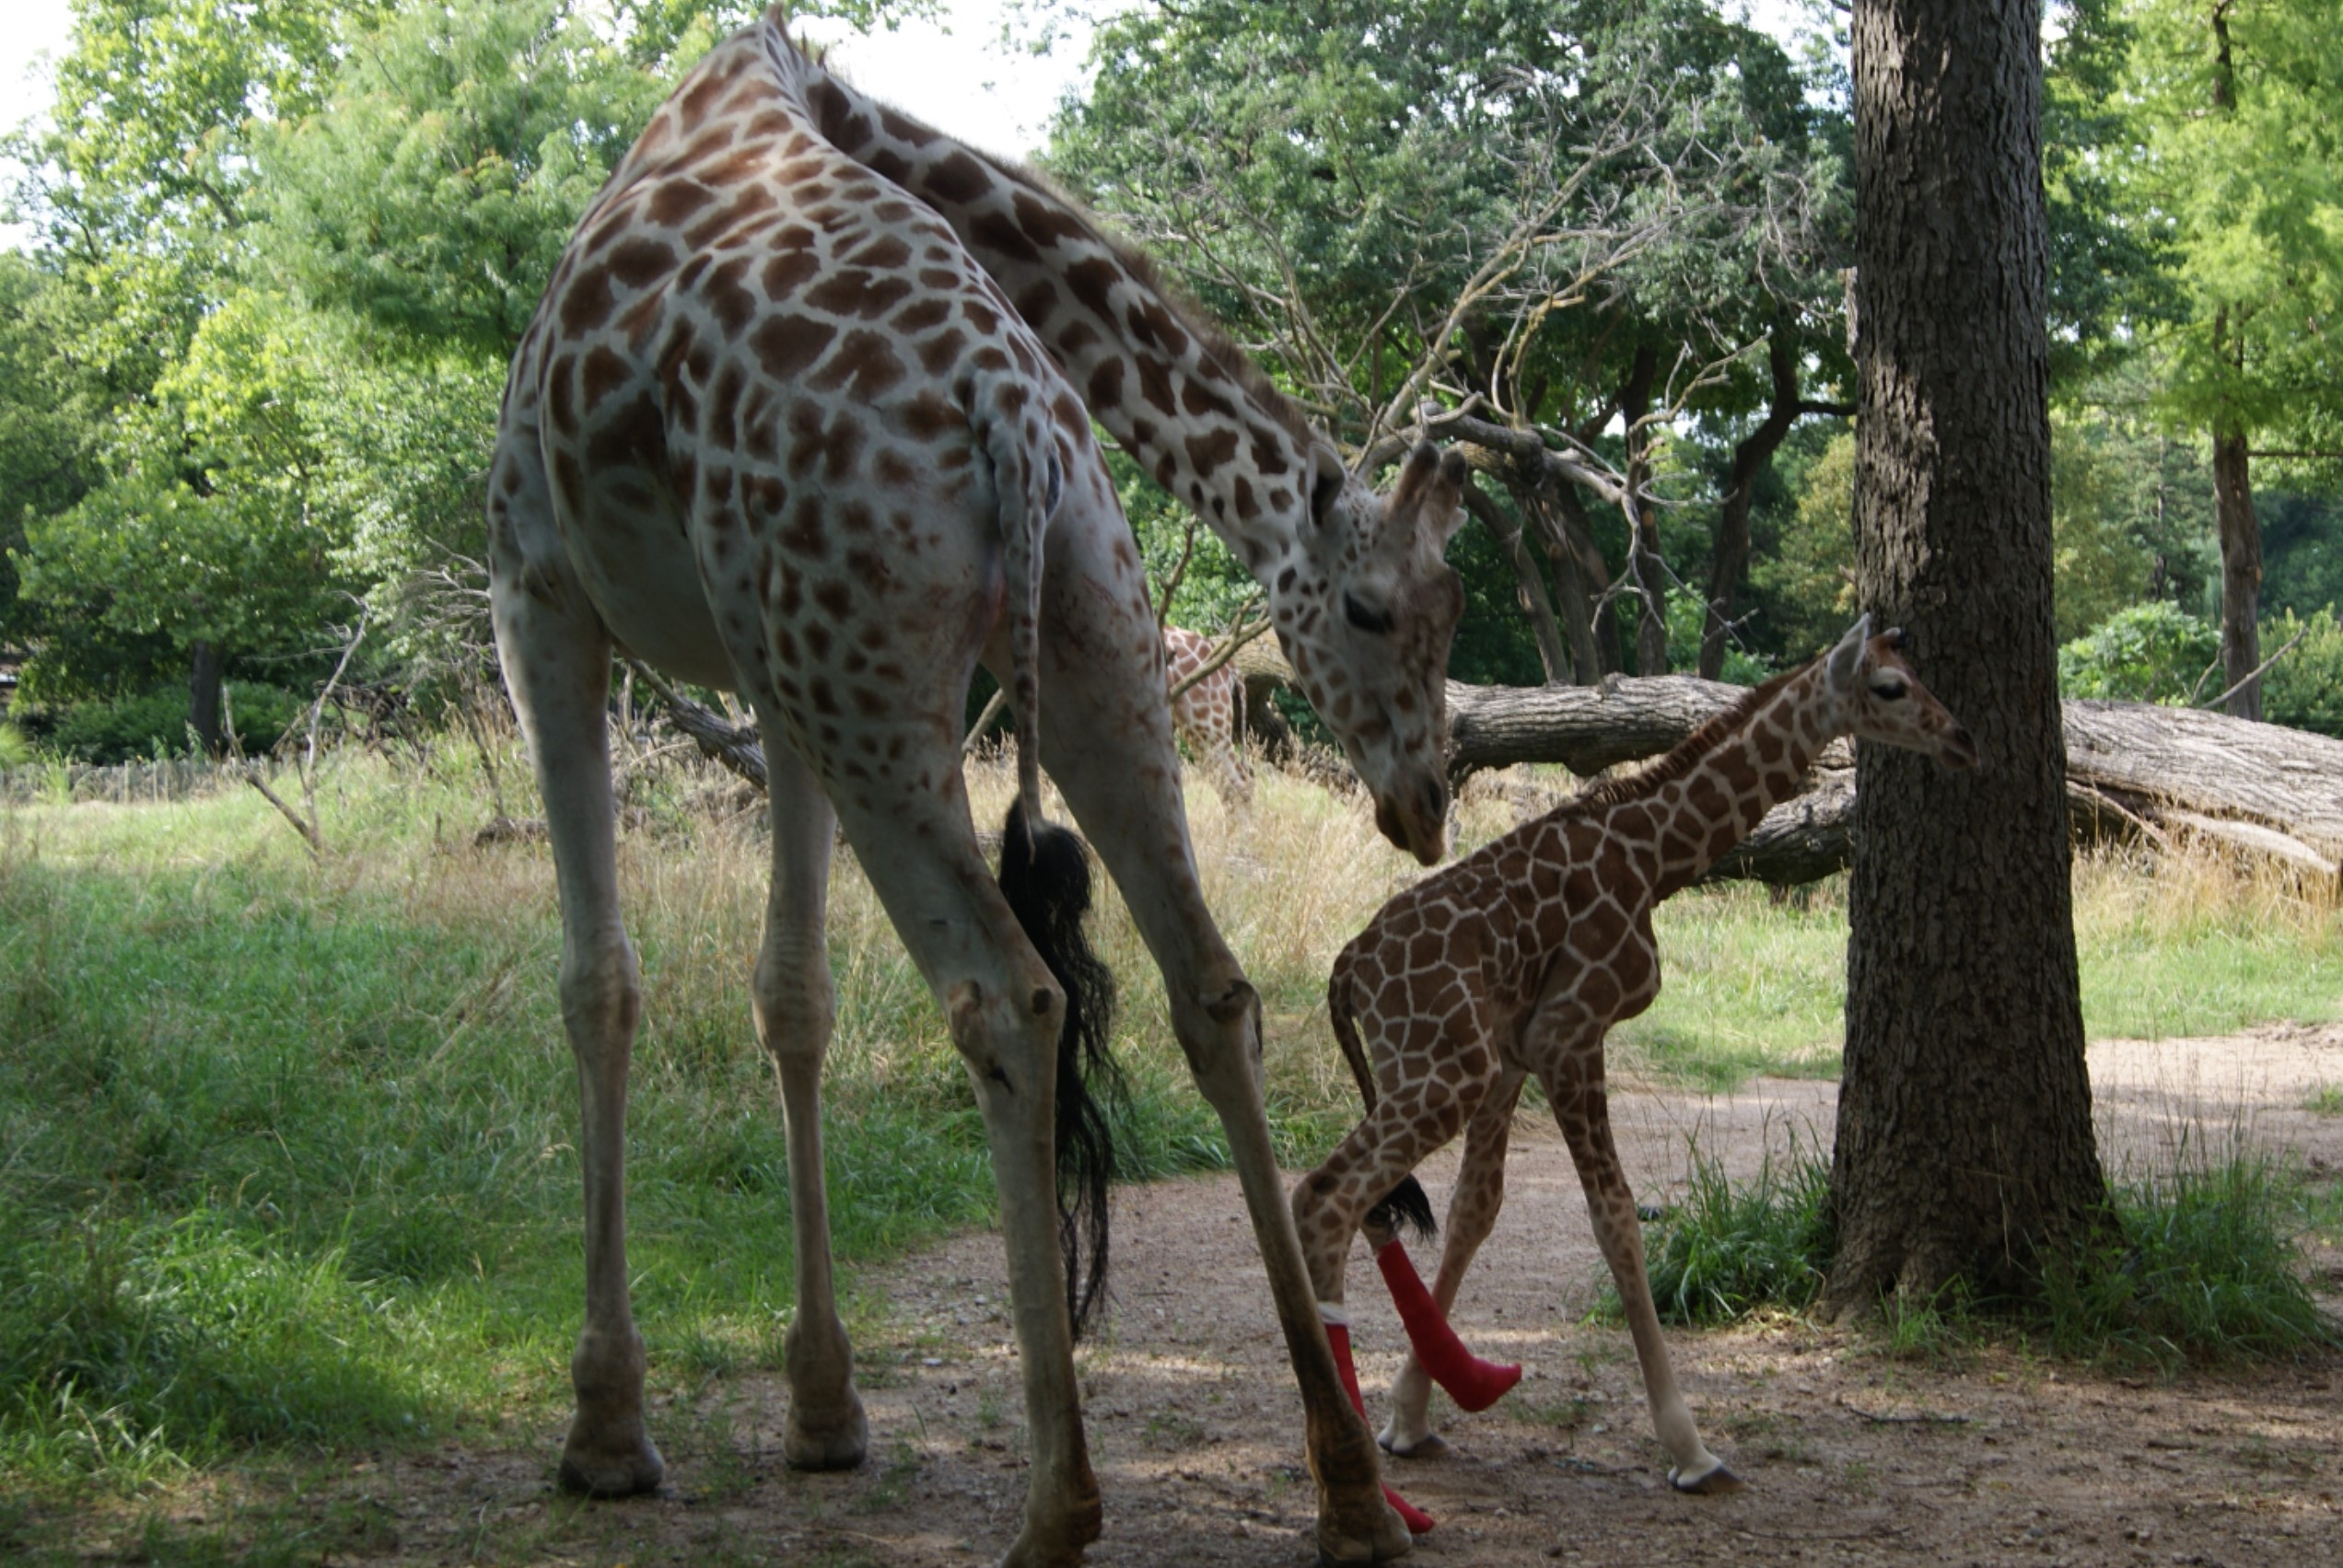 Hope the Reticulated Giraffe was born with hyperextended fetlocks which required special casts and physical therapy in order to thrive.